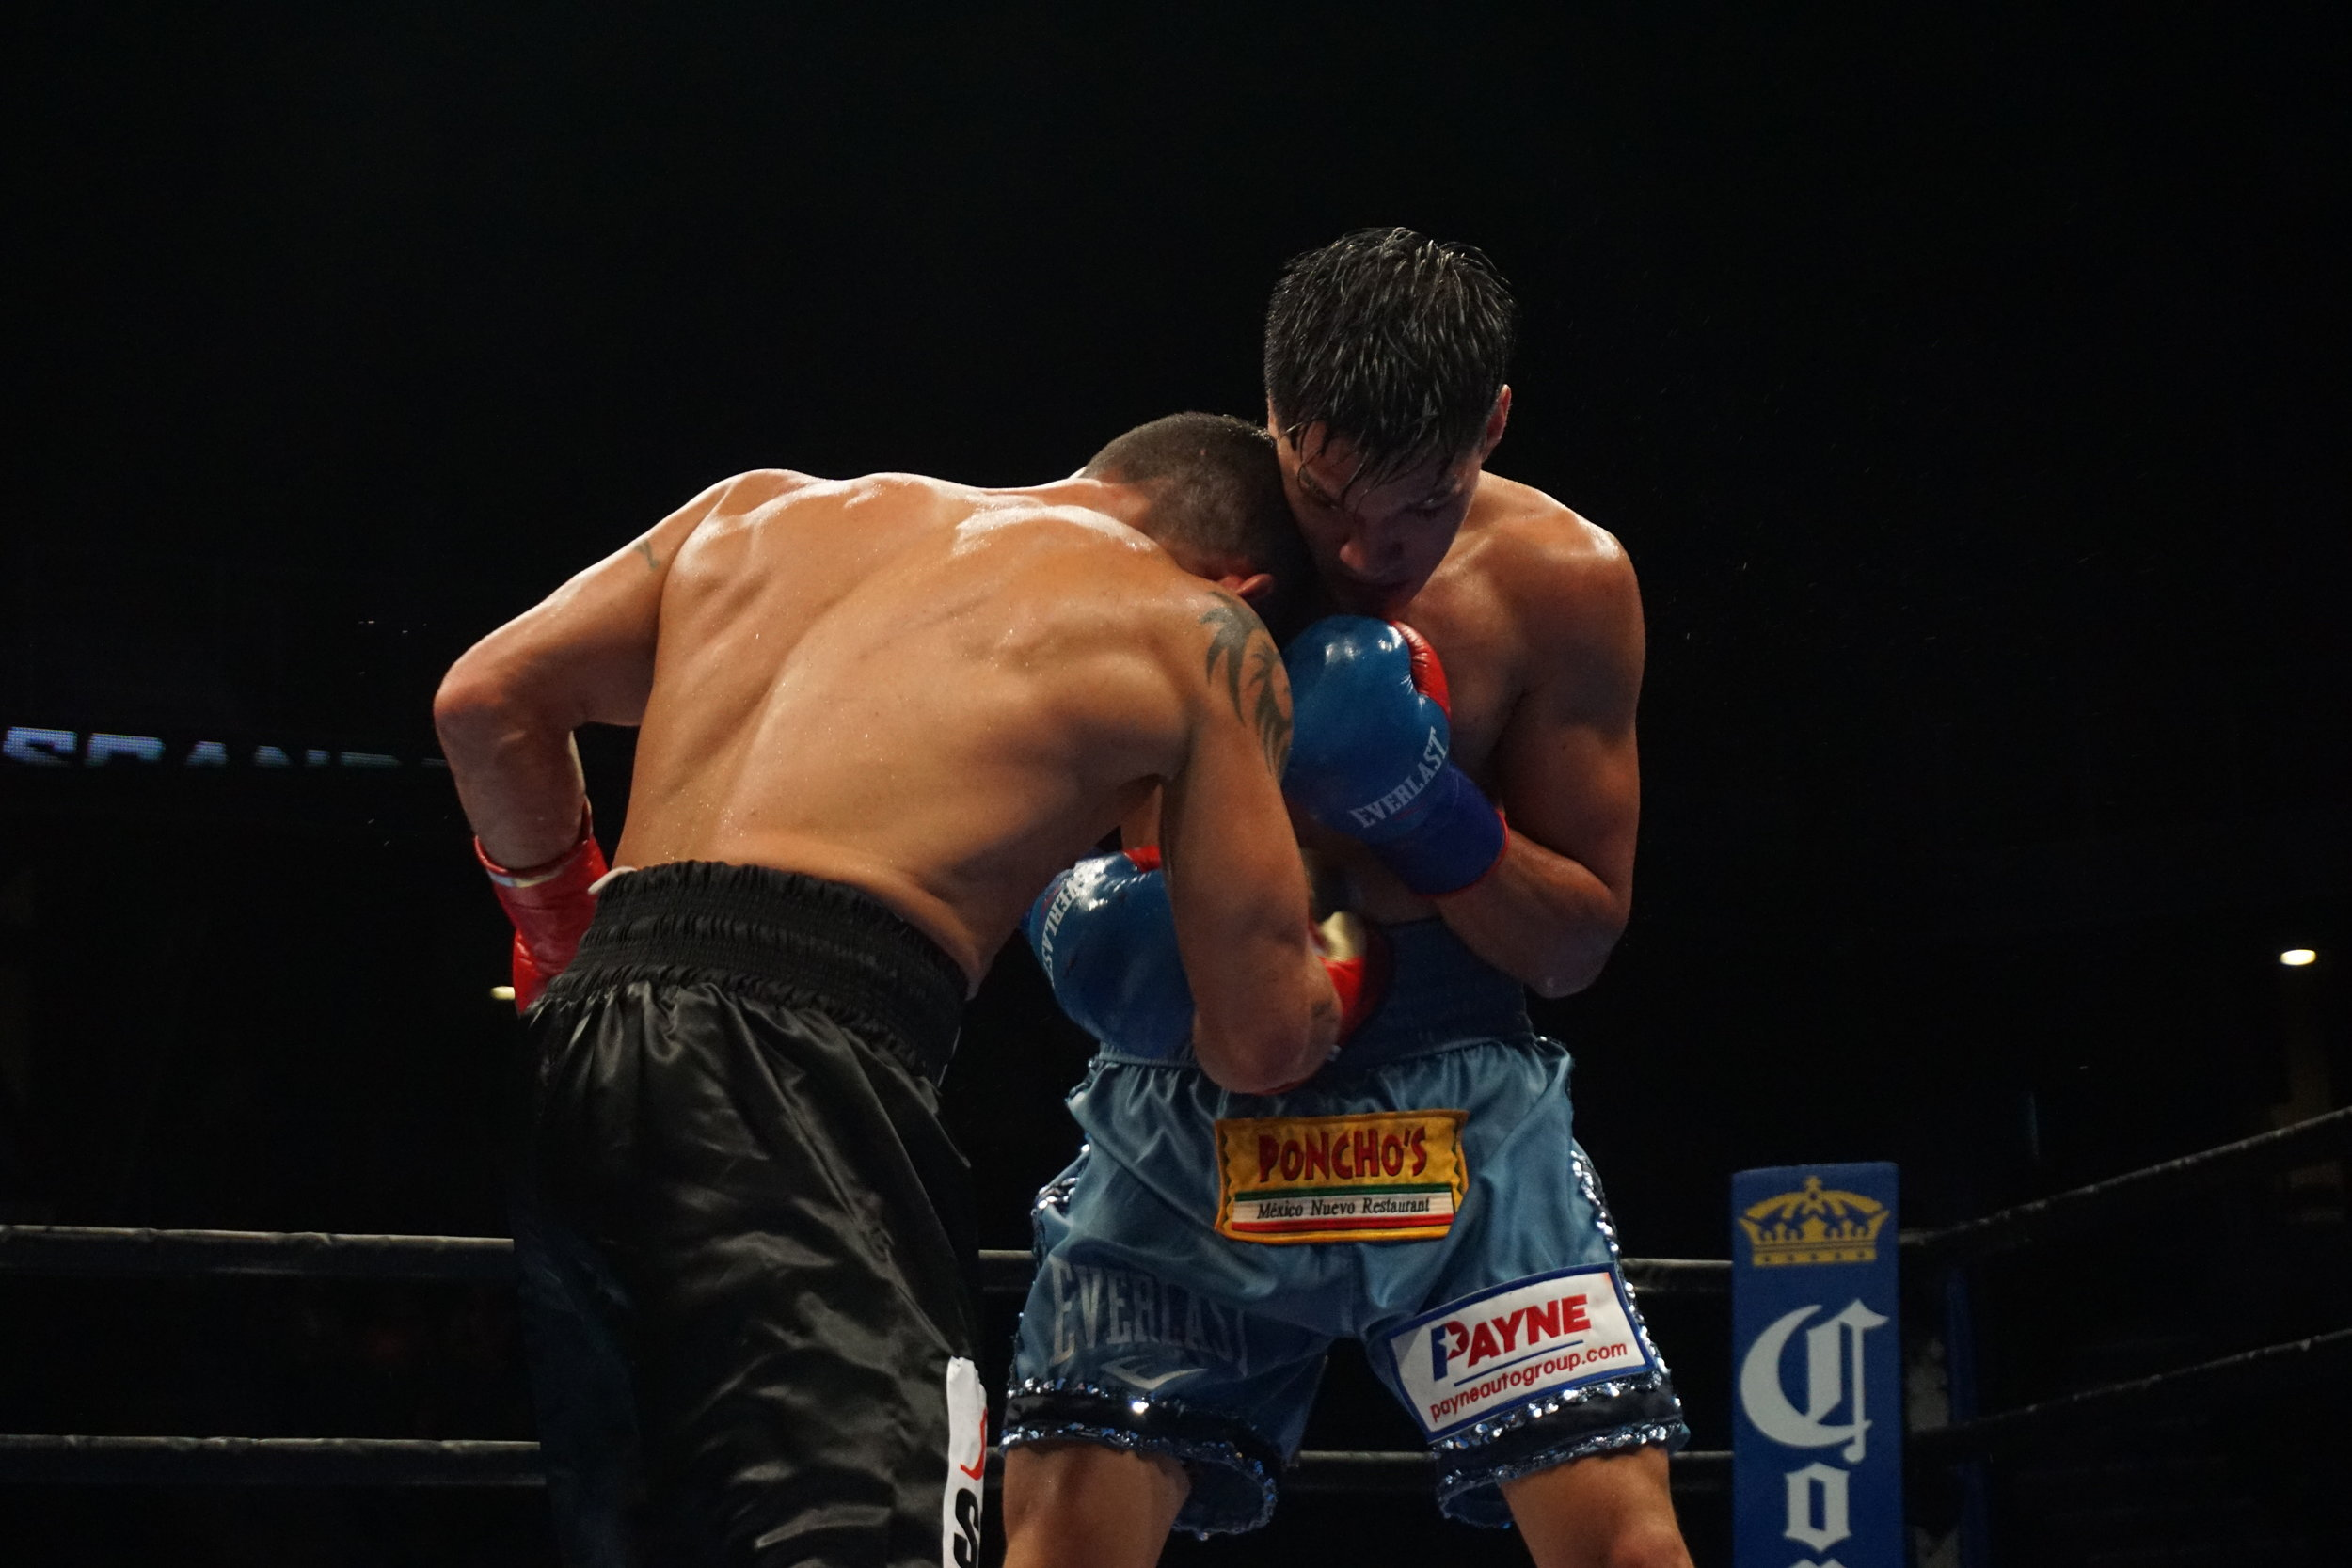 Escandon lands a right punch to body by Andrea Antolini